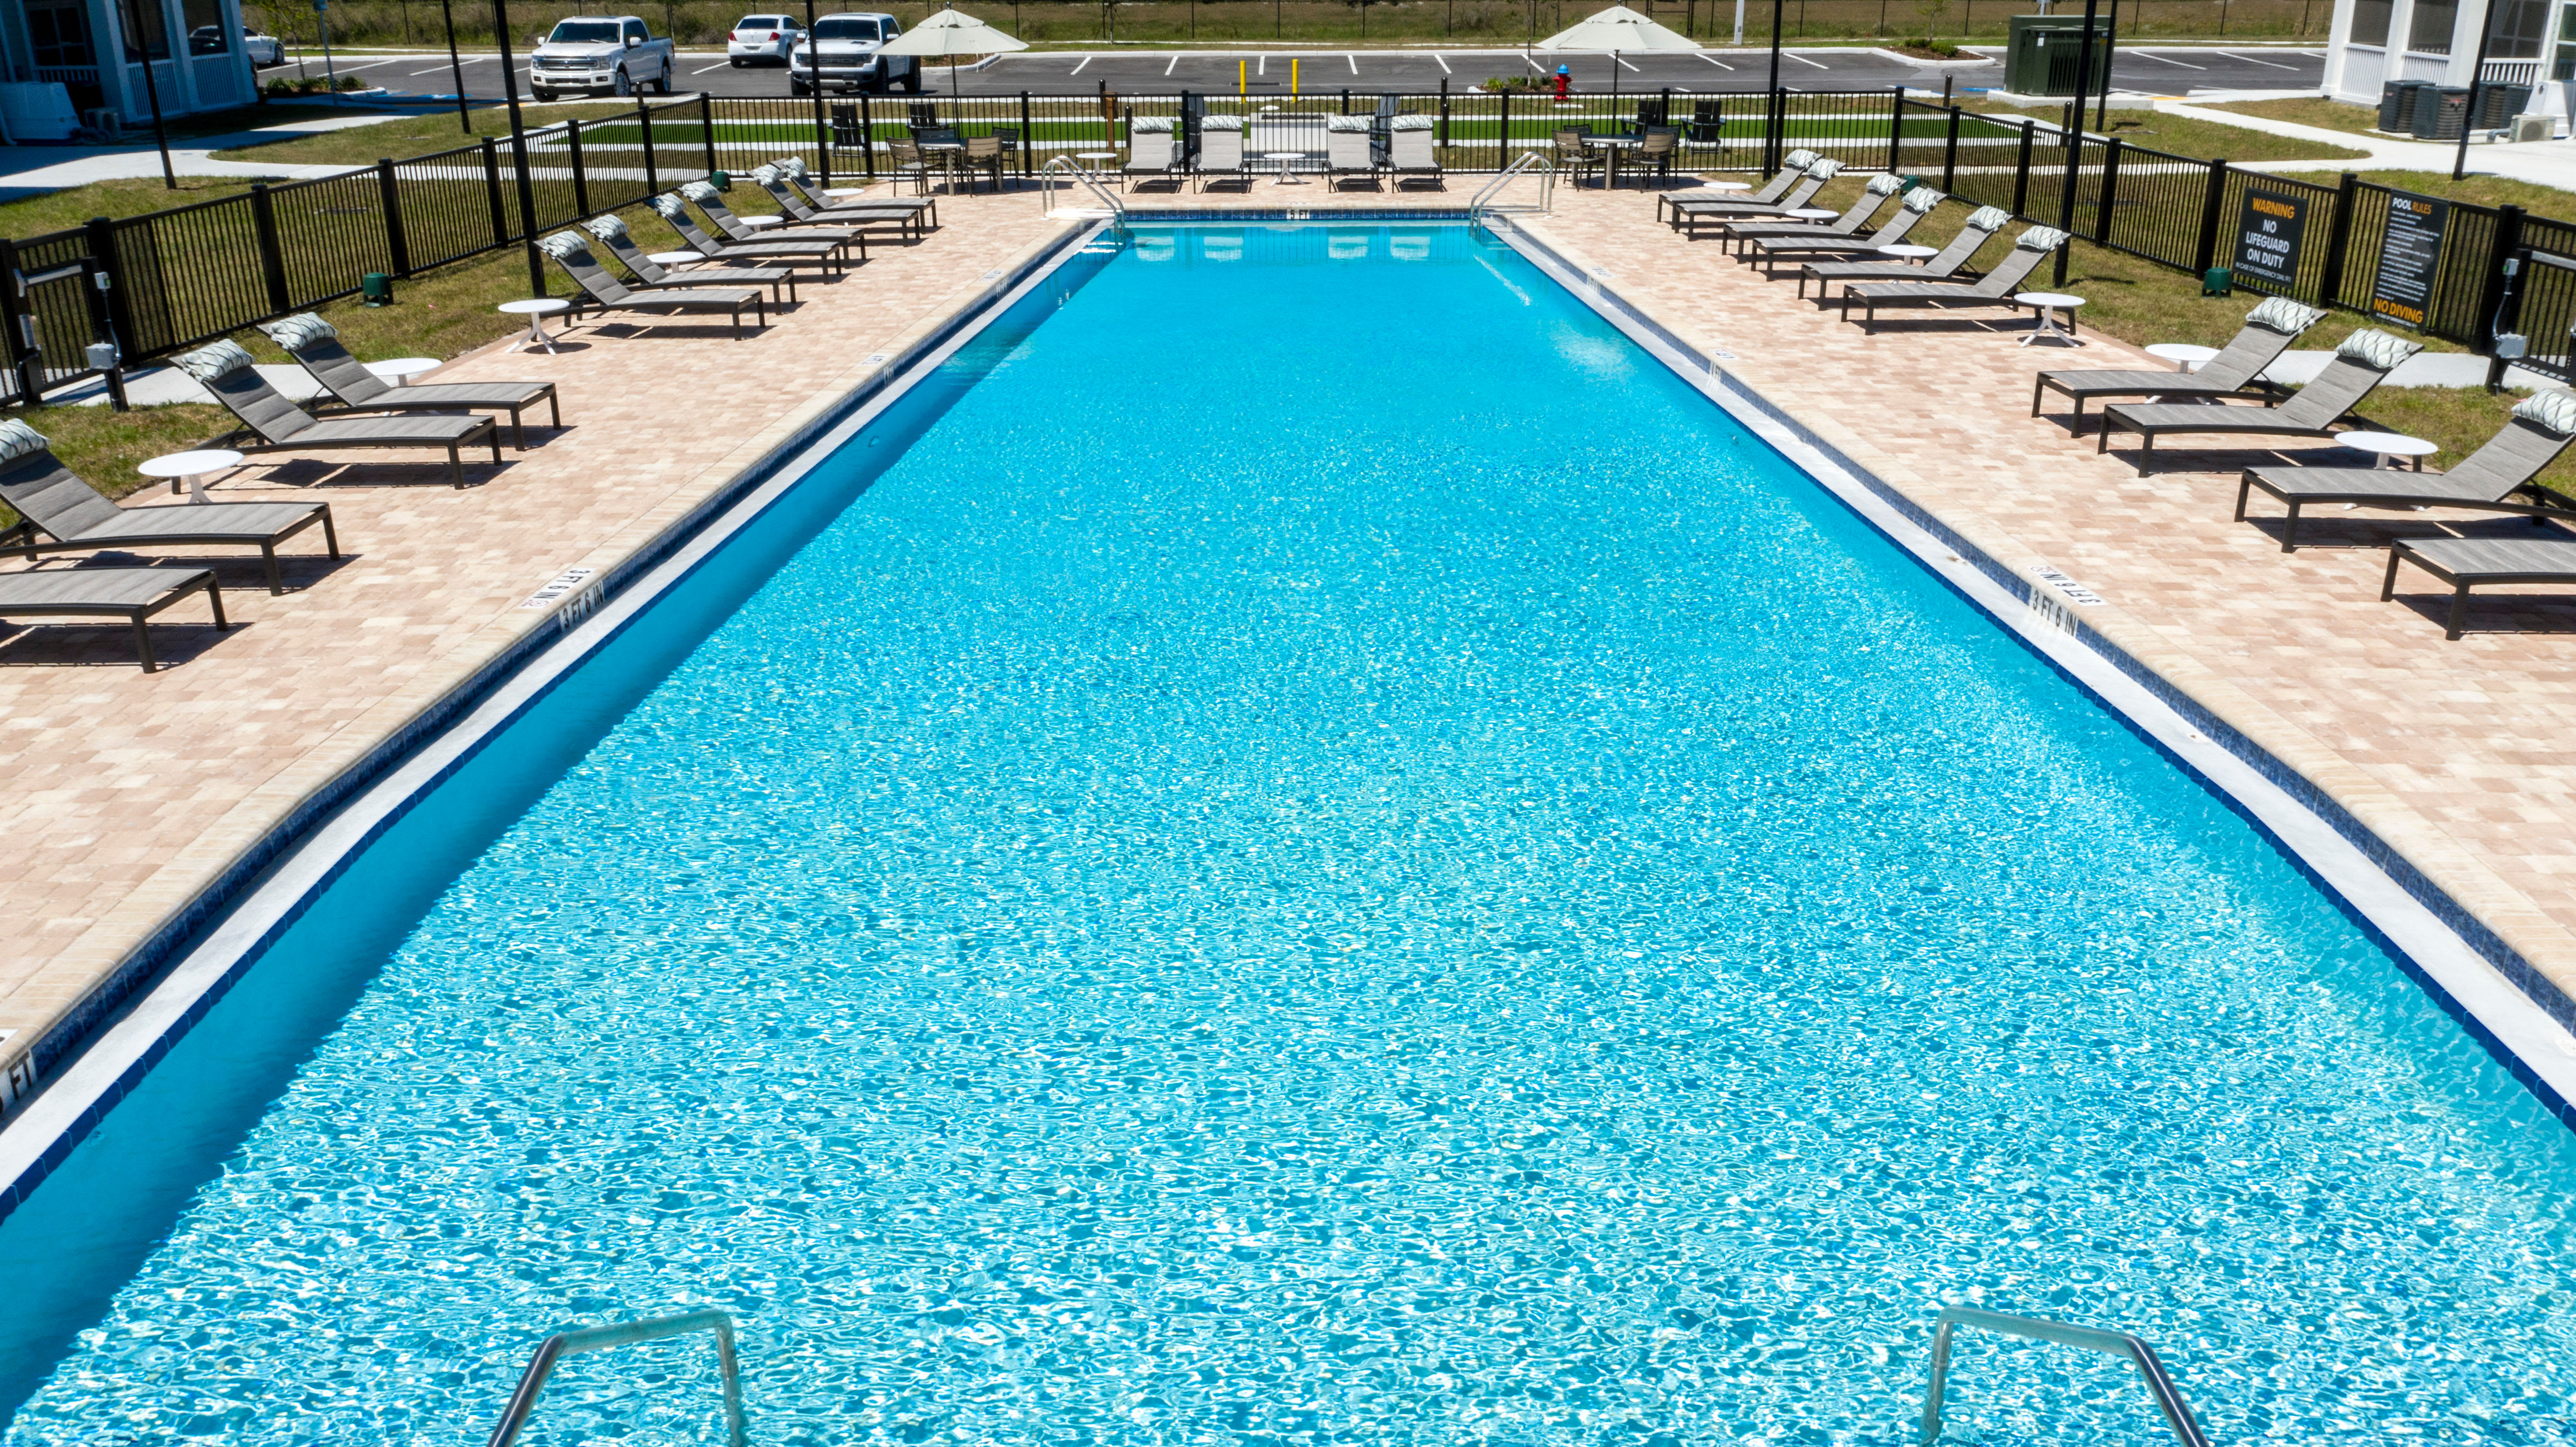 Swimming pool area on a beautiful day at Parc at Wesley Chapel in Wesley Chapel, Florida